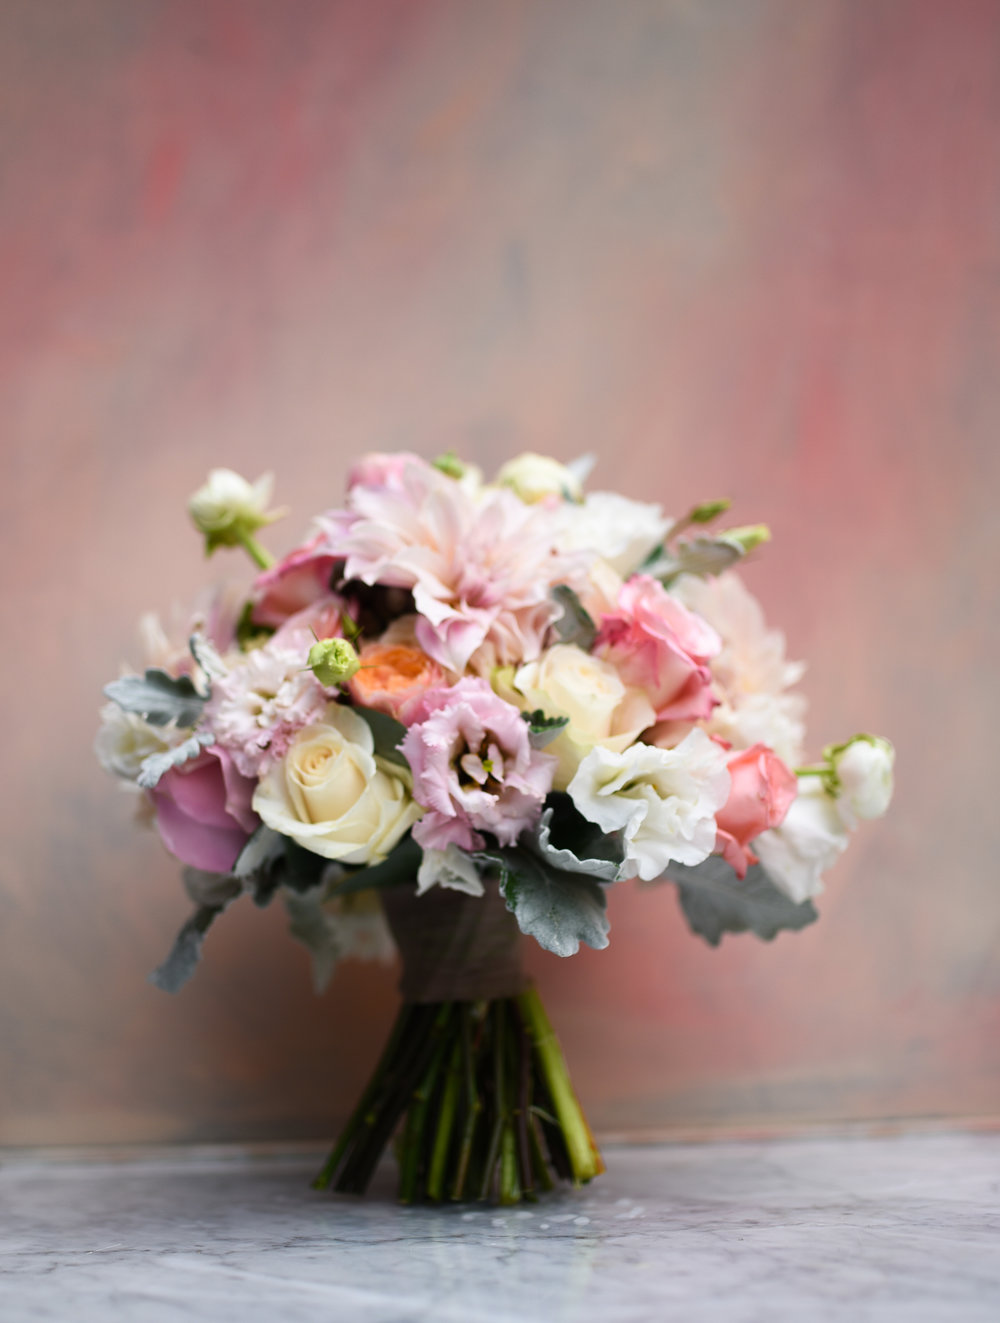 This bridal bouquet for an early fall wedding has soft, feminine, and beautiful pink tones